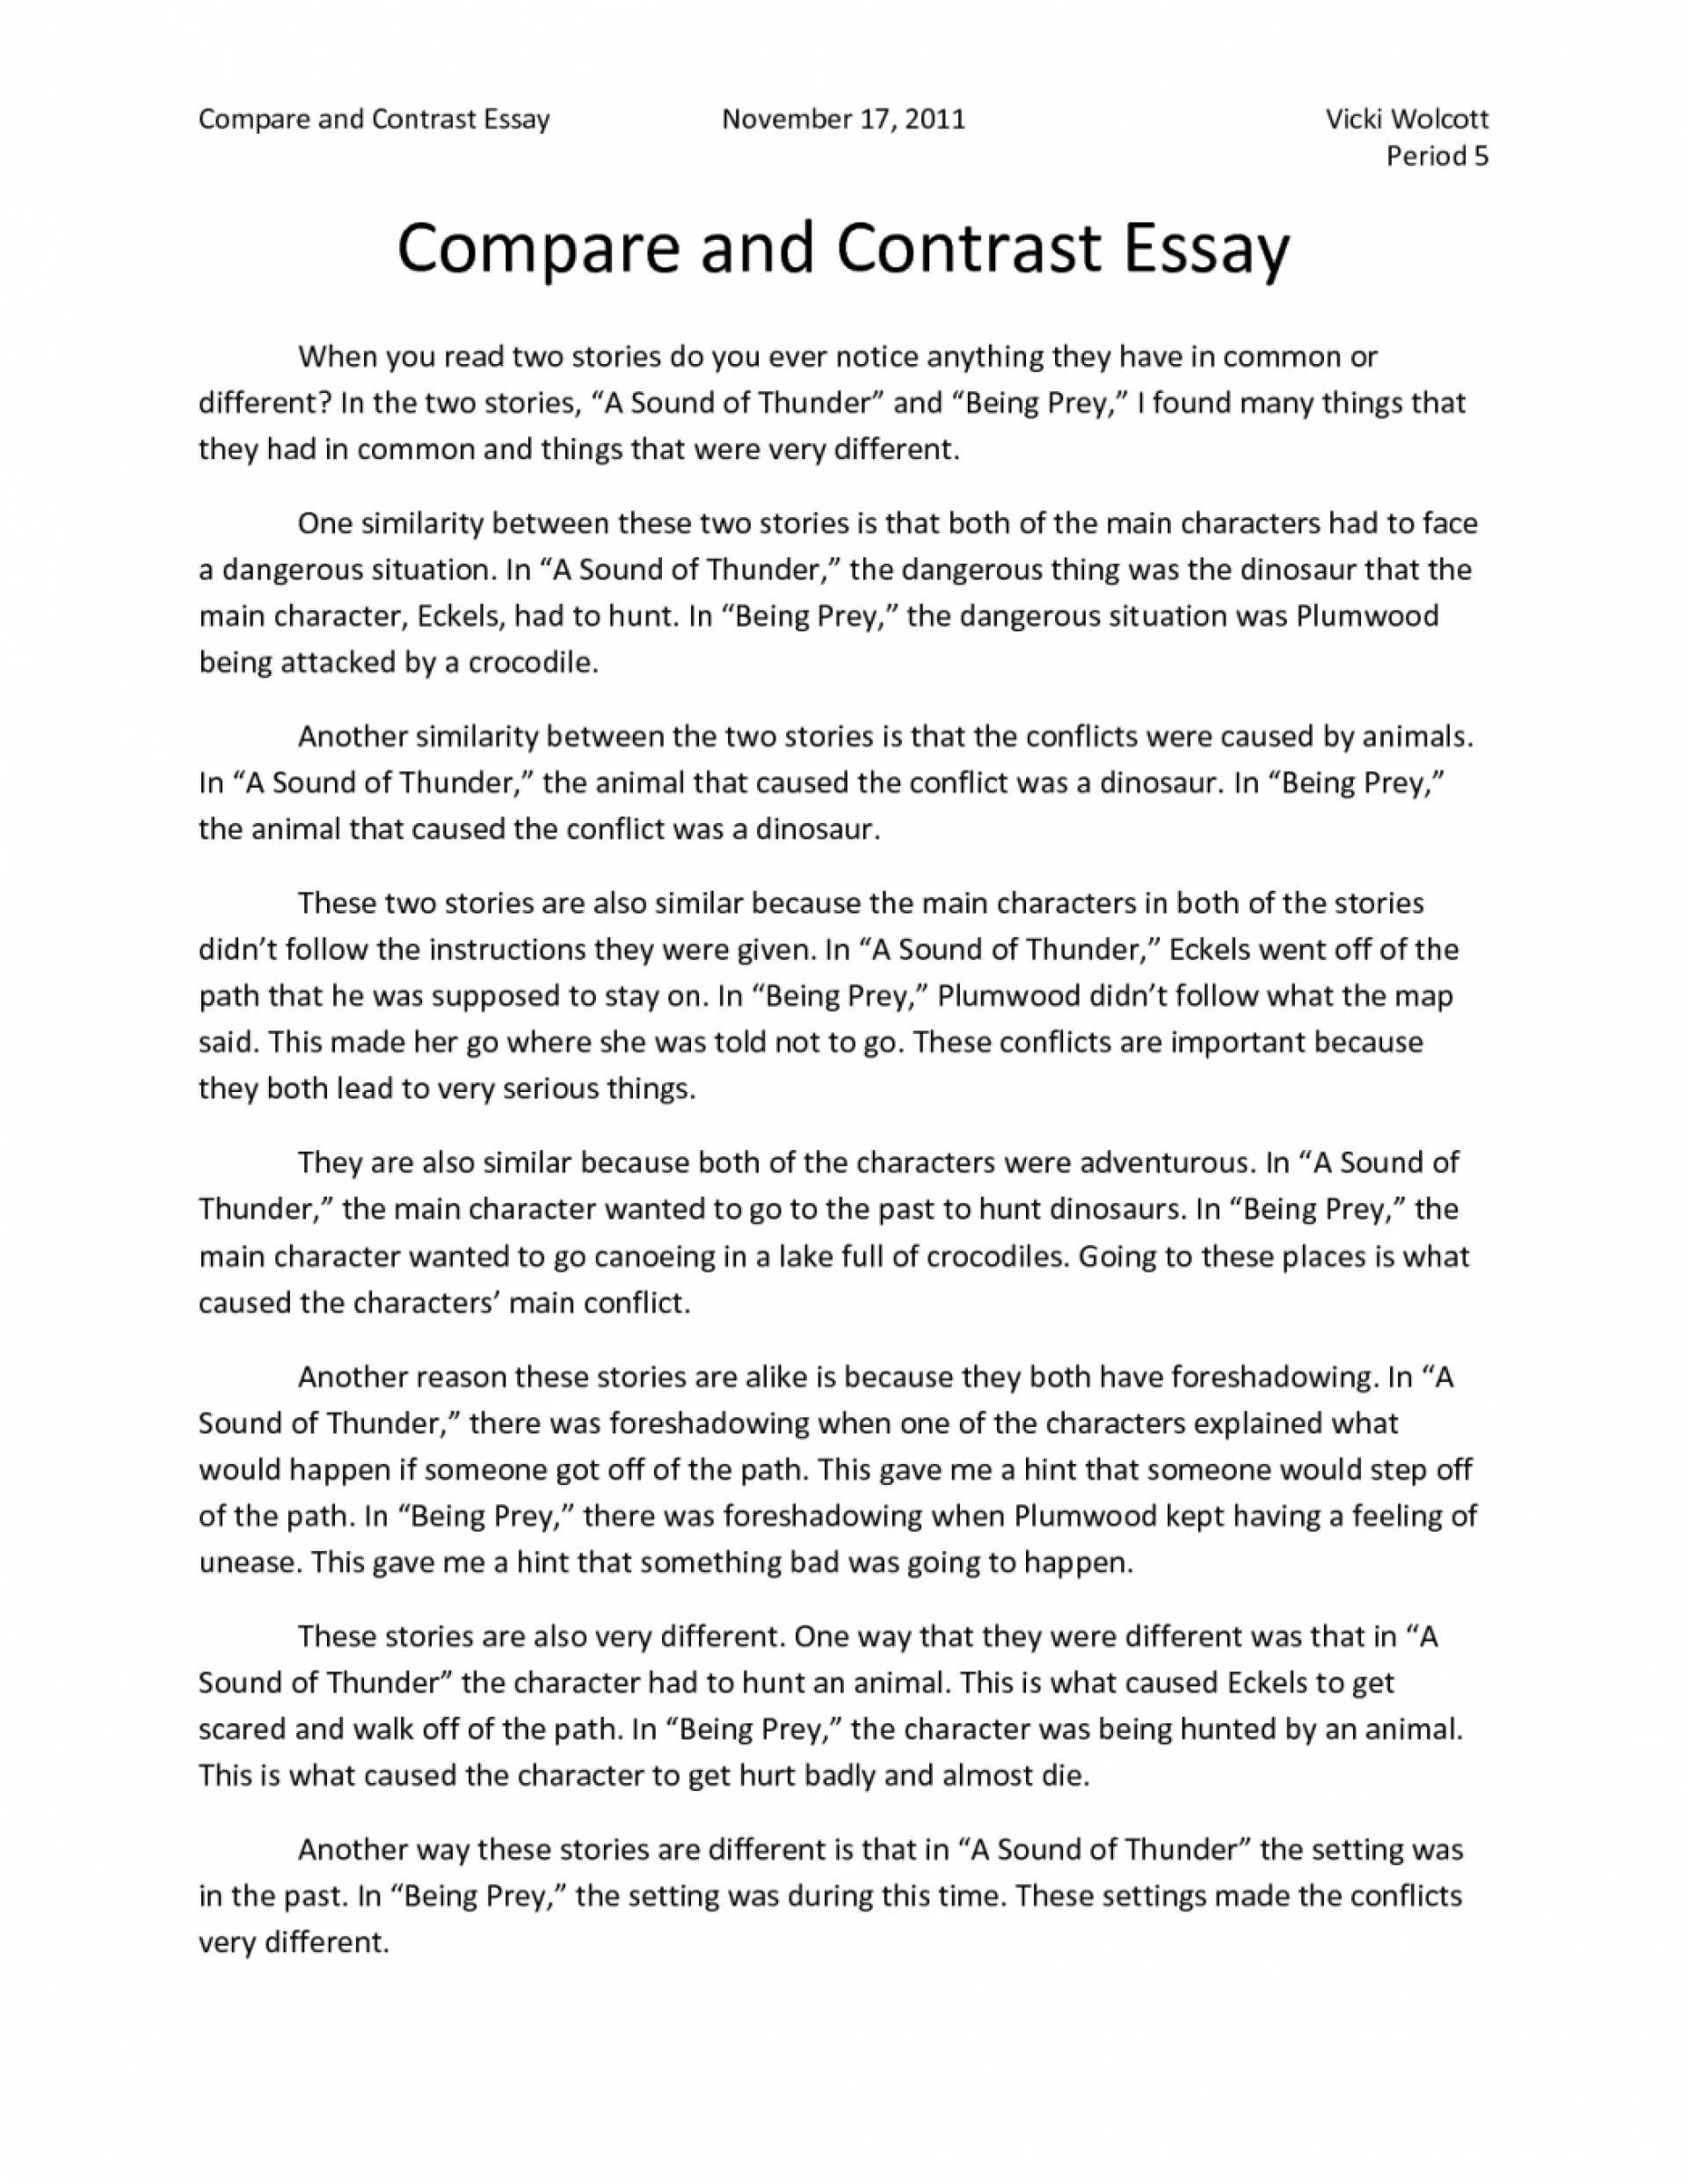 004 Argumentative Essay Topic Ideas Causal Topics Compare And Contrast For Argument Or Position 1048x1356 Surprising Rogerian Sentence 100 Easy 1920